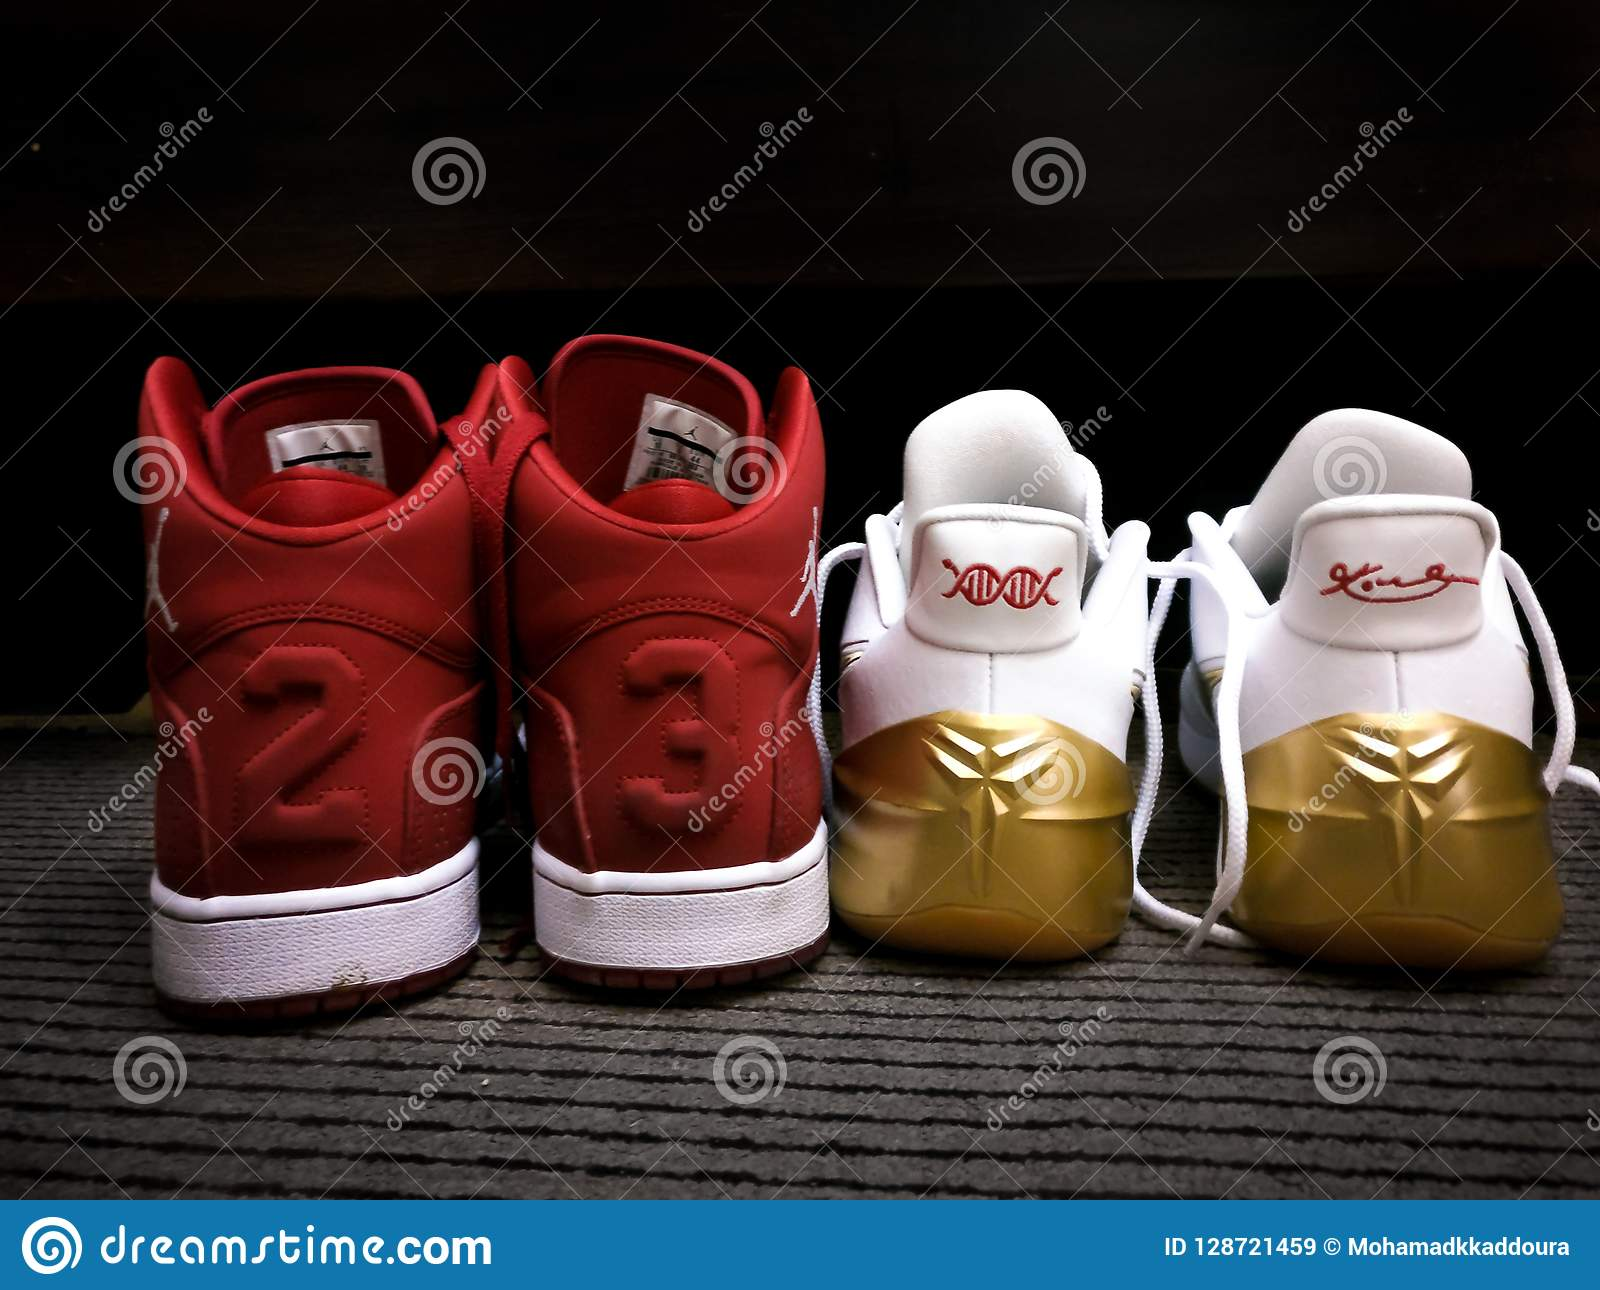 Red And White Nike Michael Jordan 23 Sneakers Kobe Bryant